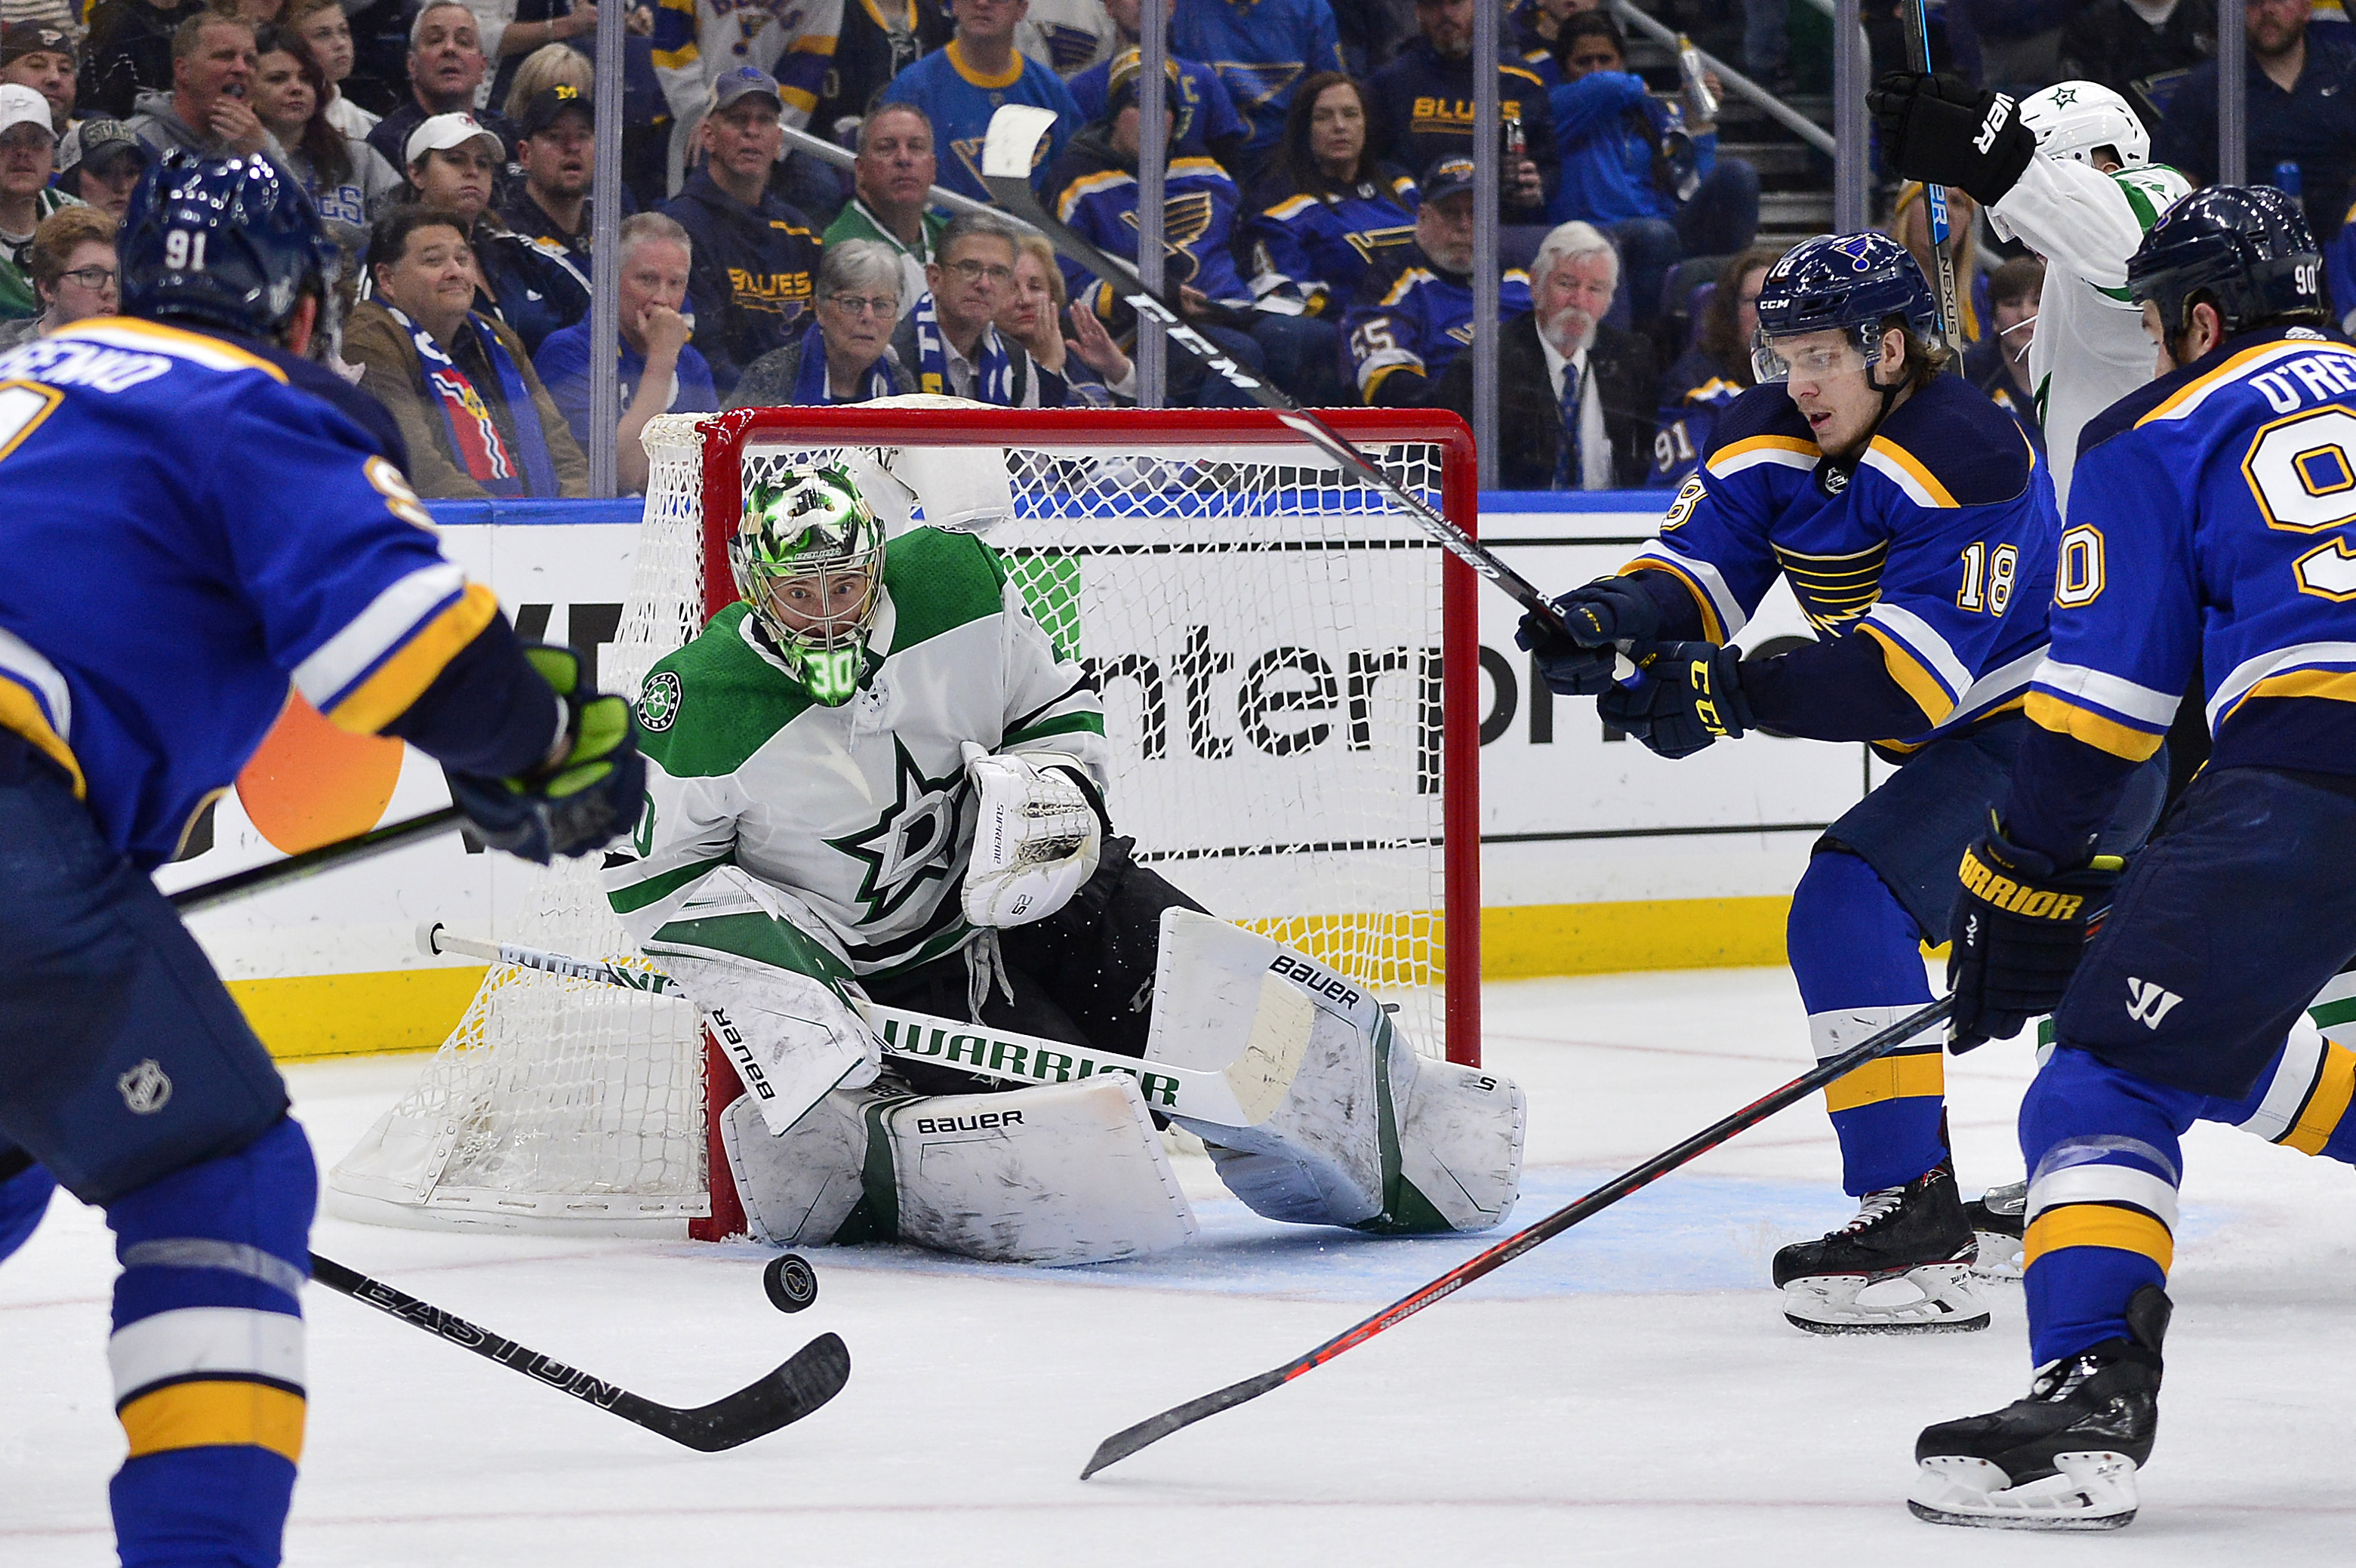 May 3, 2019; St. Louis, MO, USA; Dallas Stars goaltender Ben Bishop (30) defends the net against St. Louis Blues center Robert Thomas (18) and center Ryan O'Reilly (90) during the second period in game five of the second round of the 2019 Stanley Cup Play